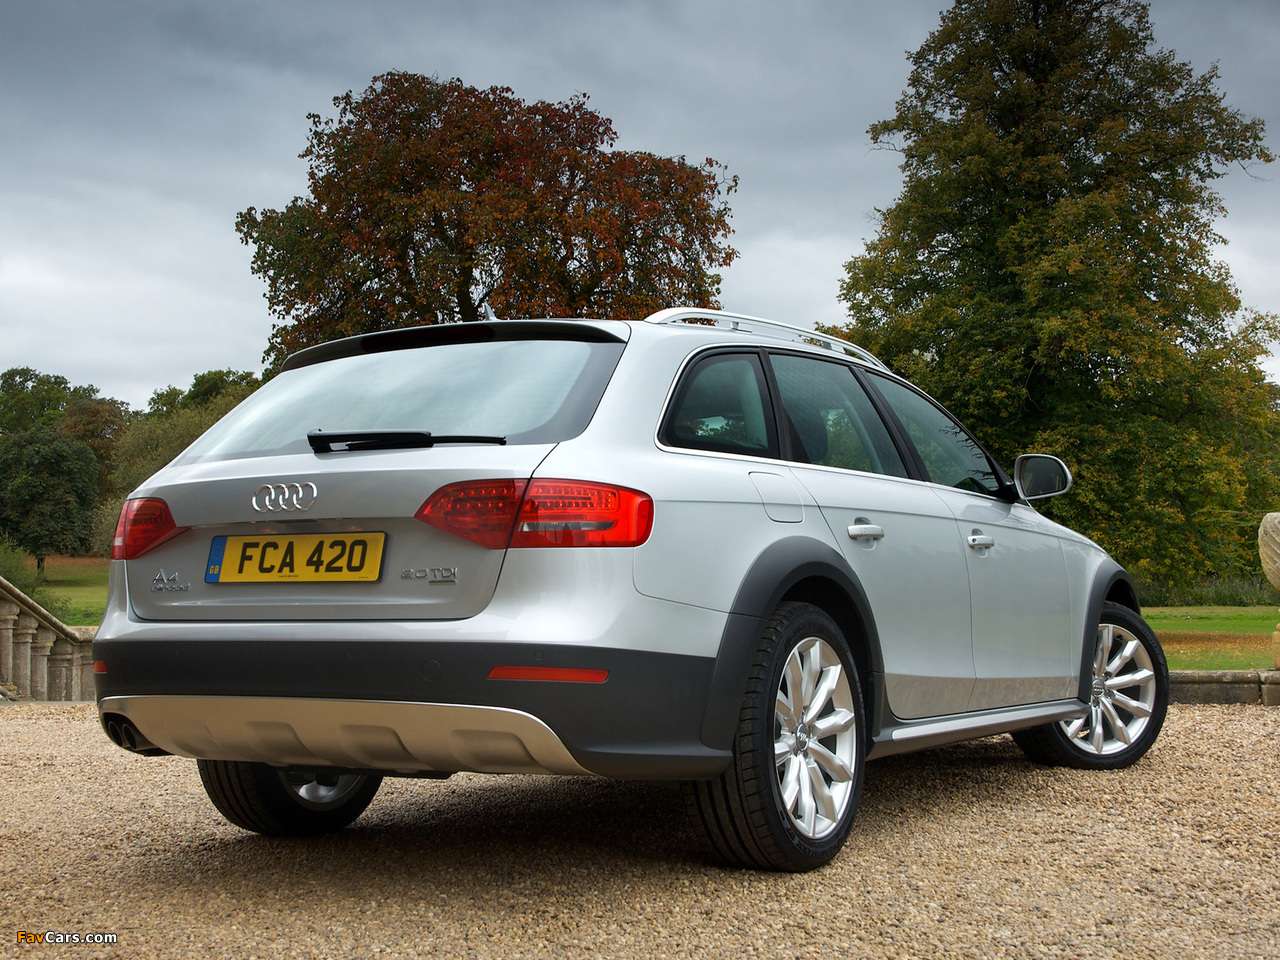 Images Of Audi A4 Allroad 2 0 Tdi Quattro Uk Spec B8 8k